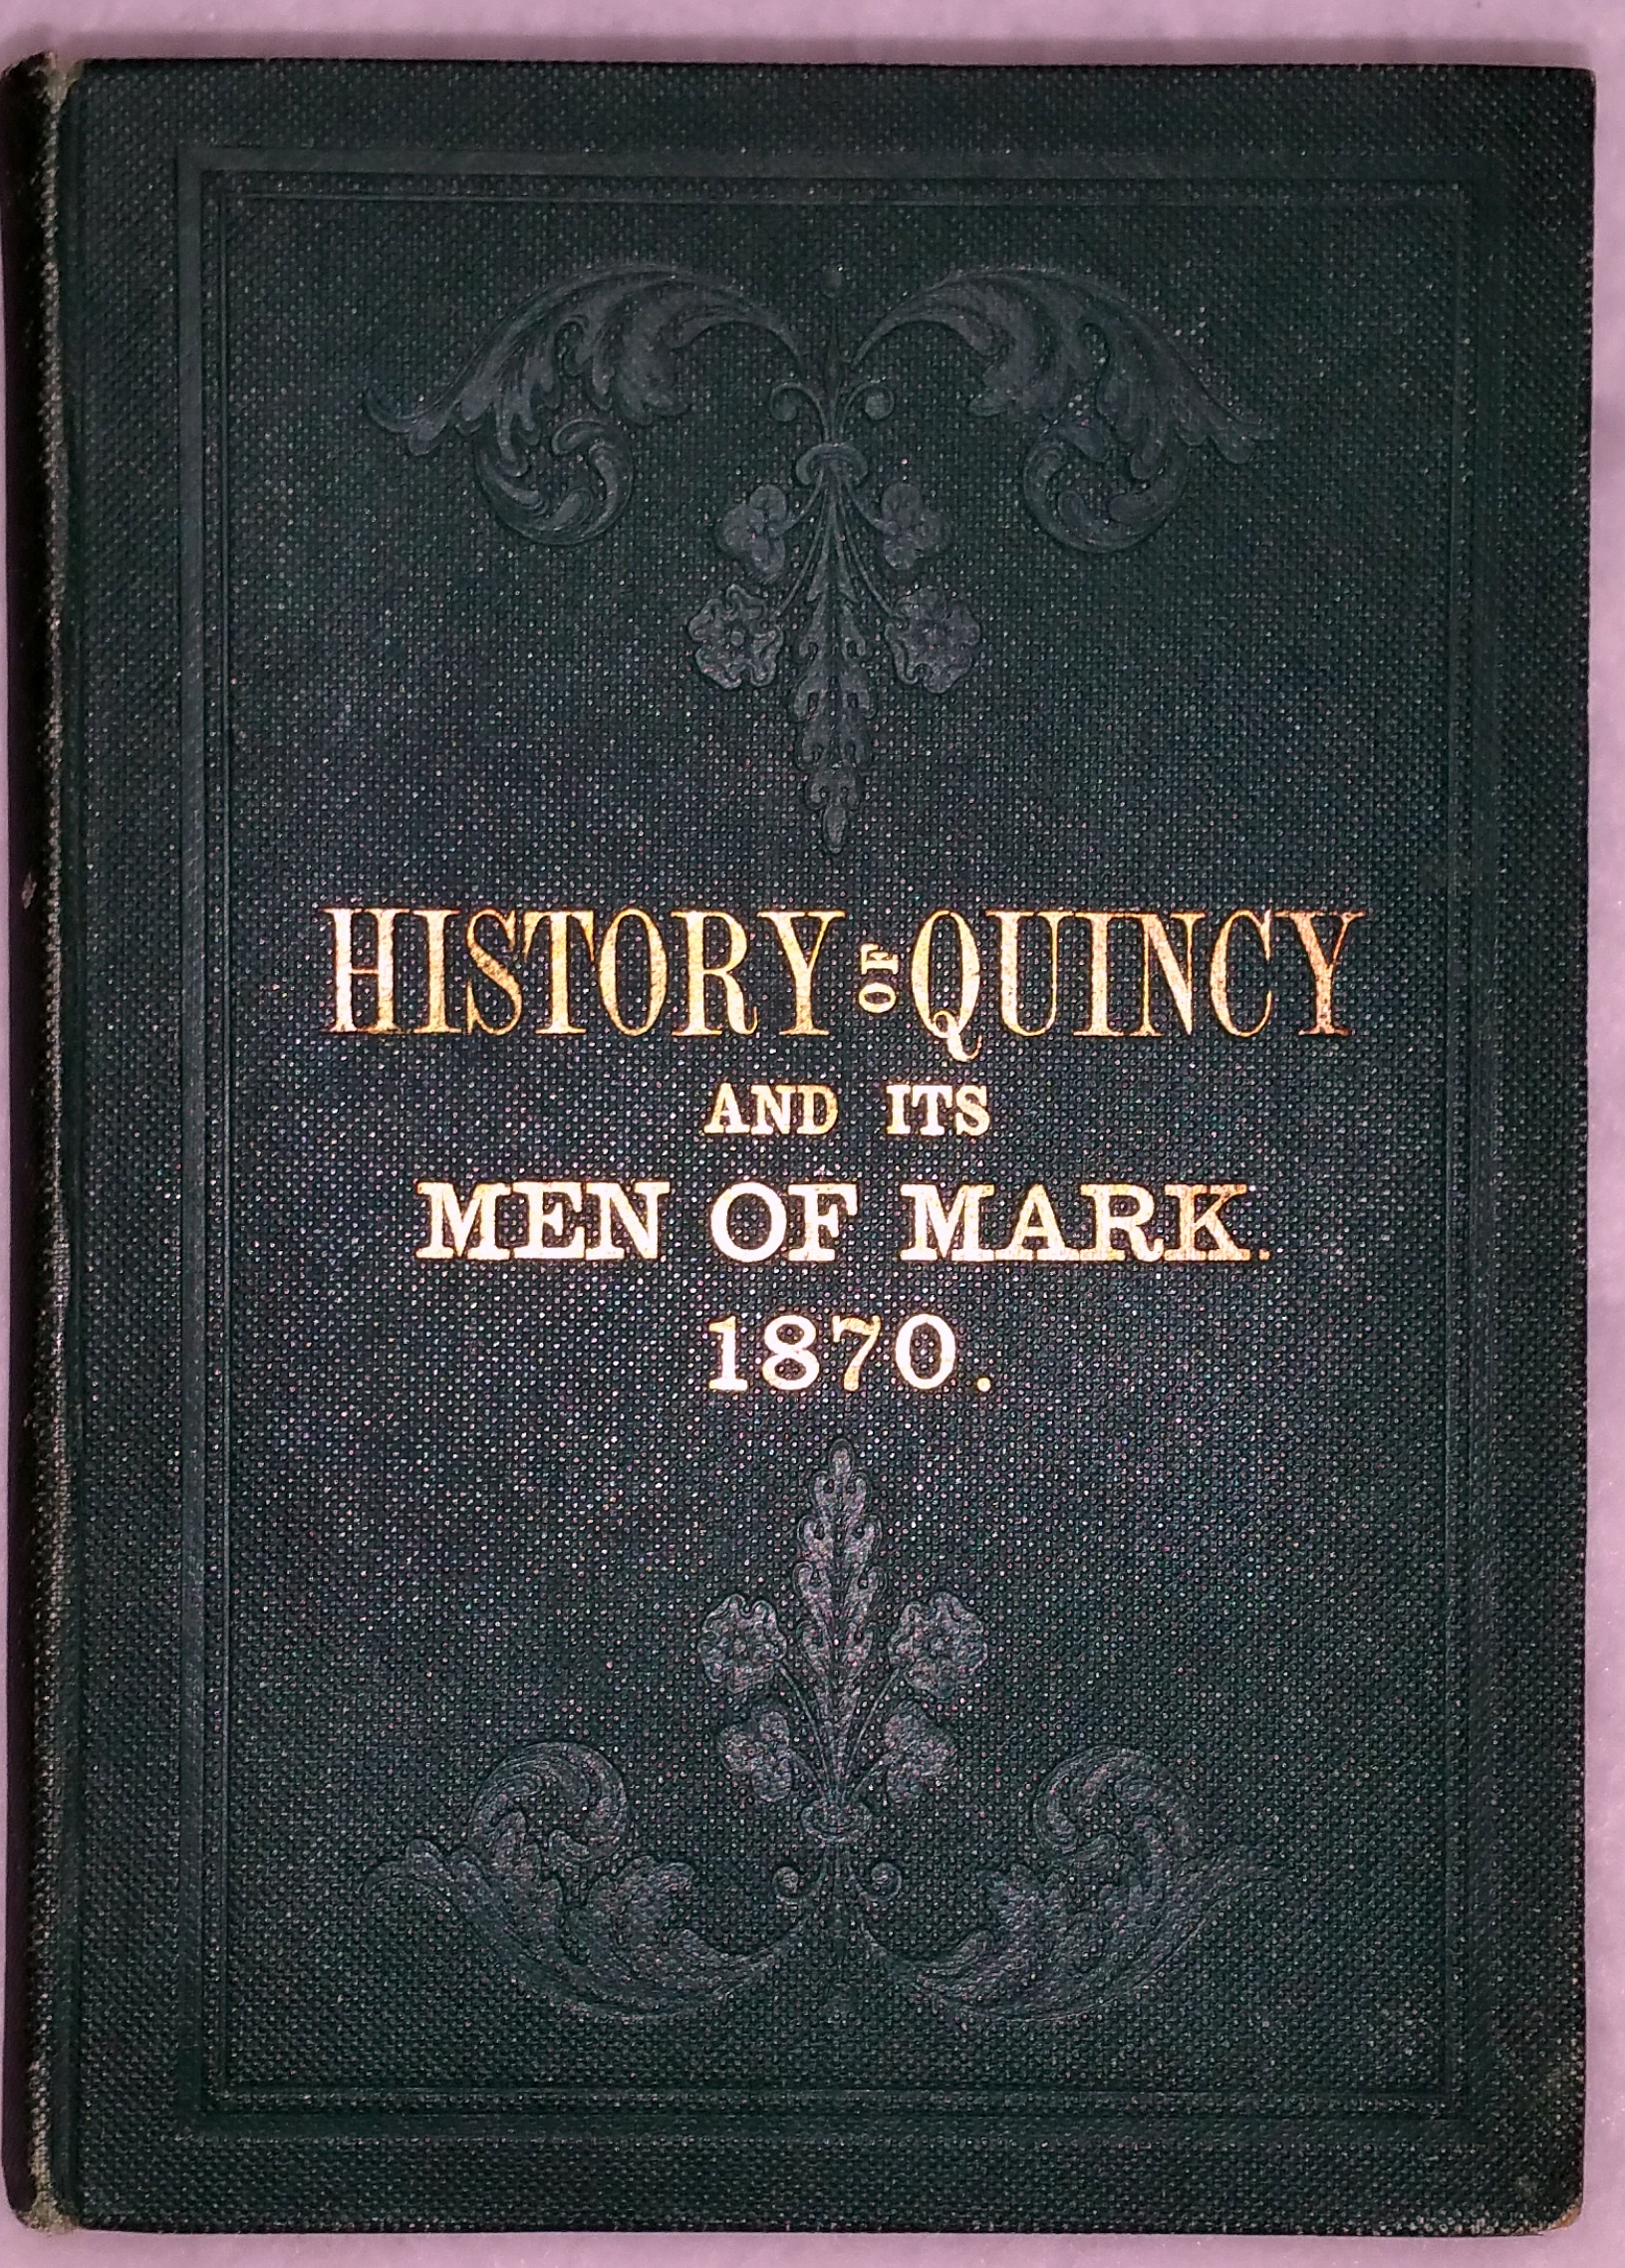 Image for History of Quincy, and Its Men of Mark, or Facts and Figures Exhibiting Its Advantages and Resources, Manufactures and Commerce